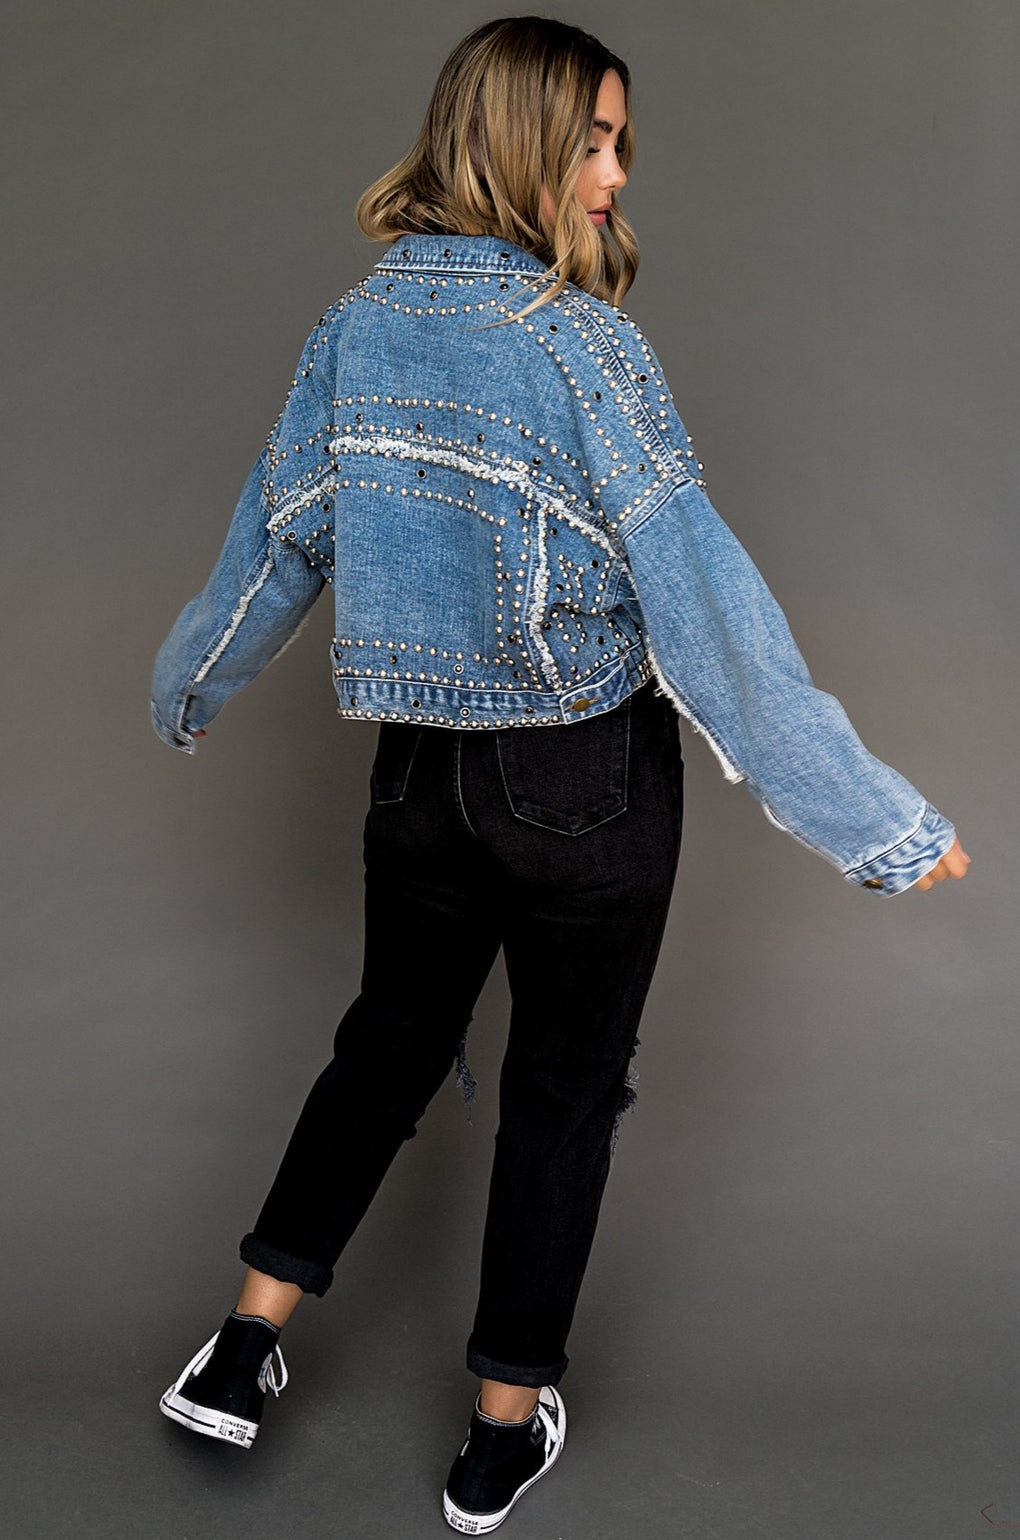 Royal Luxe Studded Denim Jacket in Blue